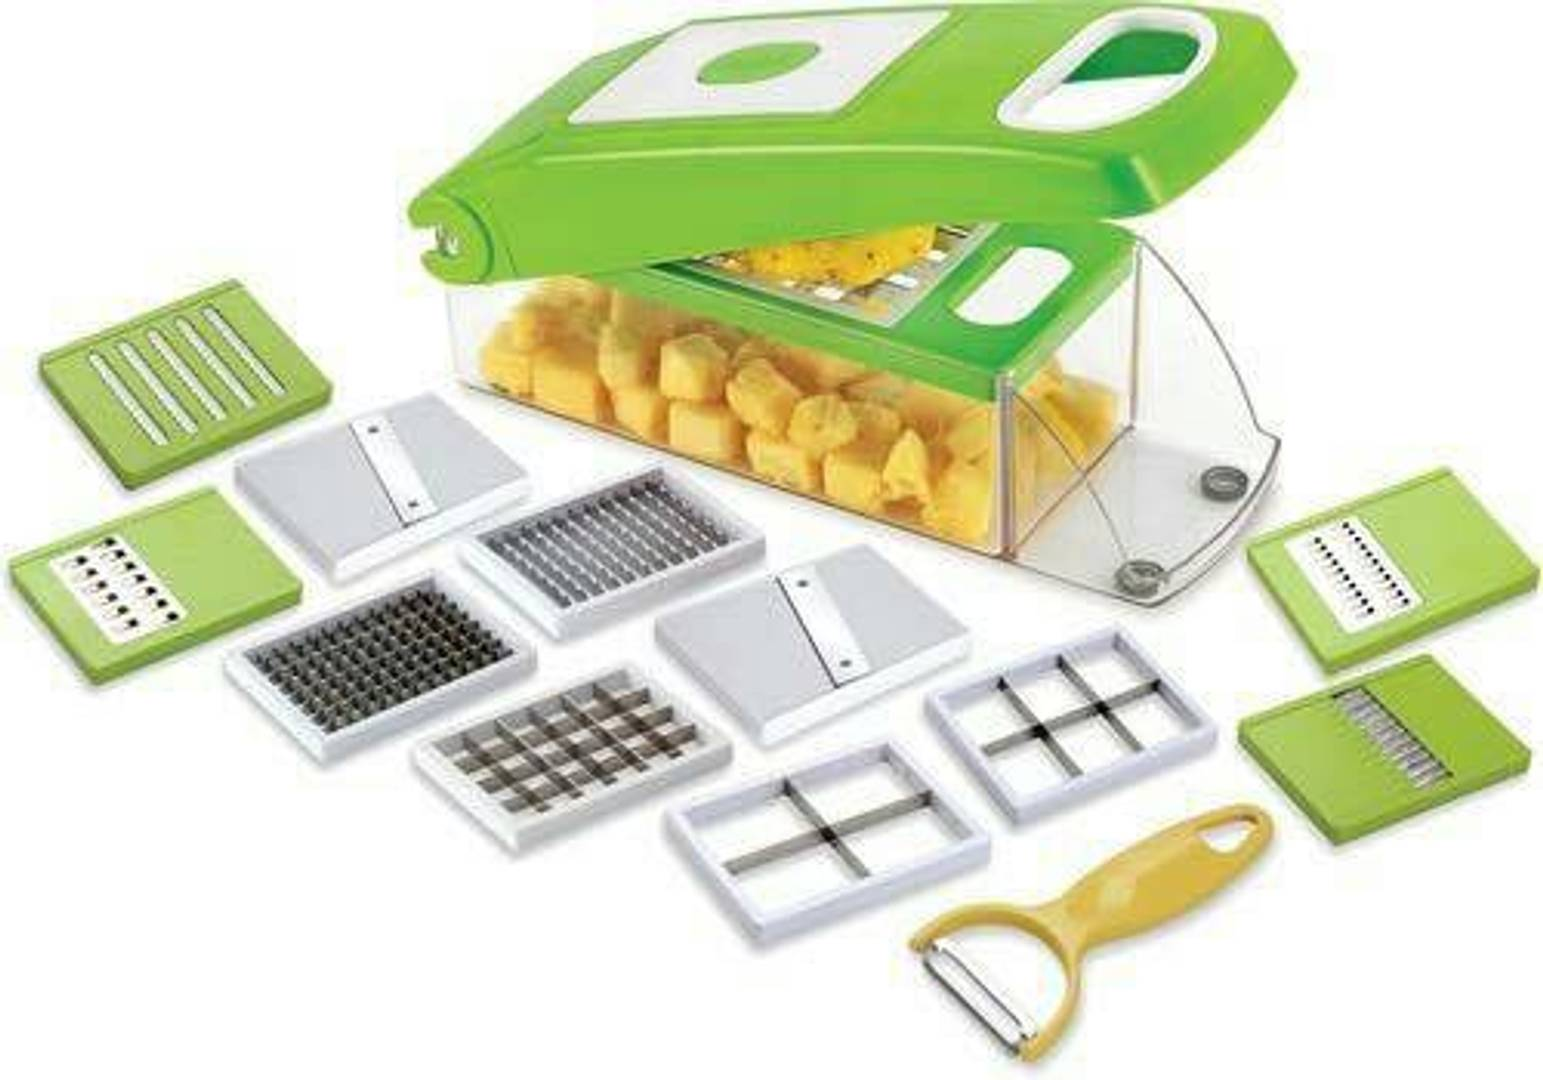 Vegetable And Fruit Cutter 12 in 1